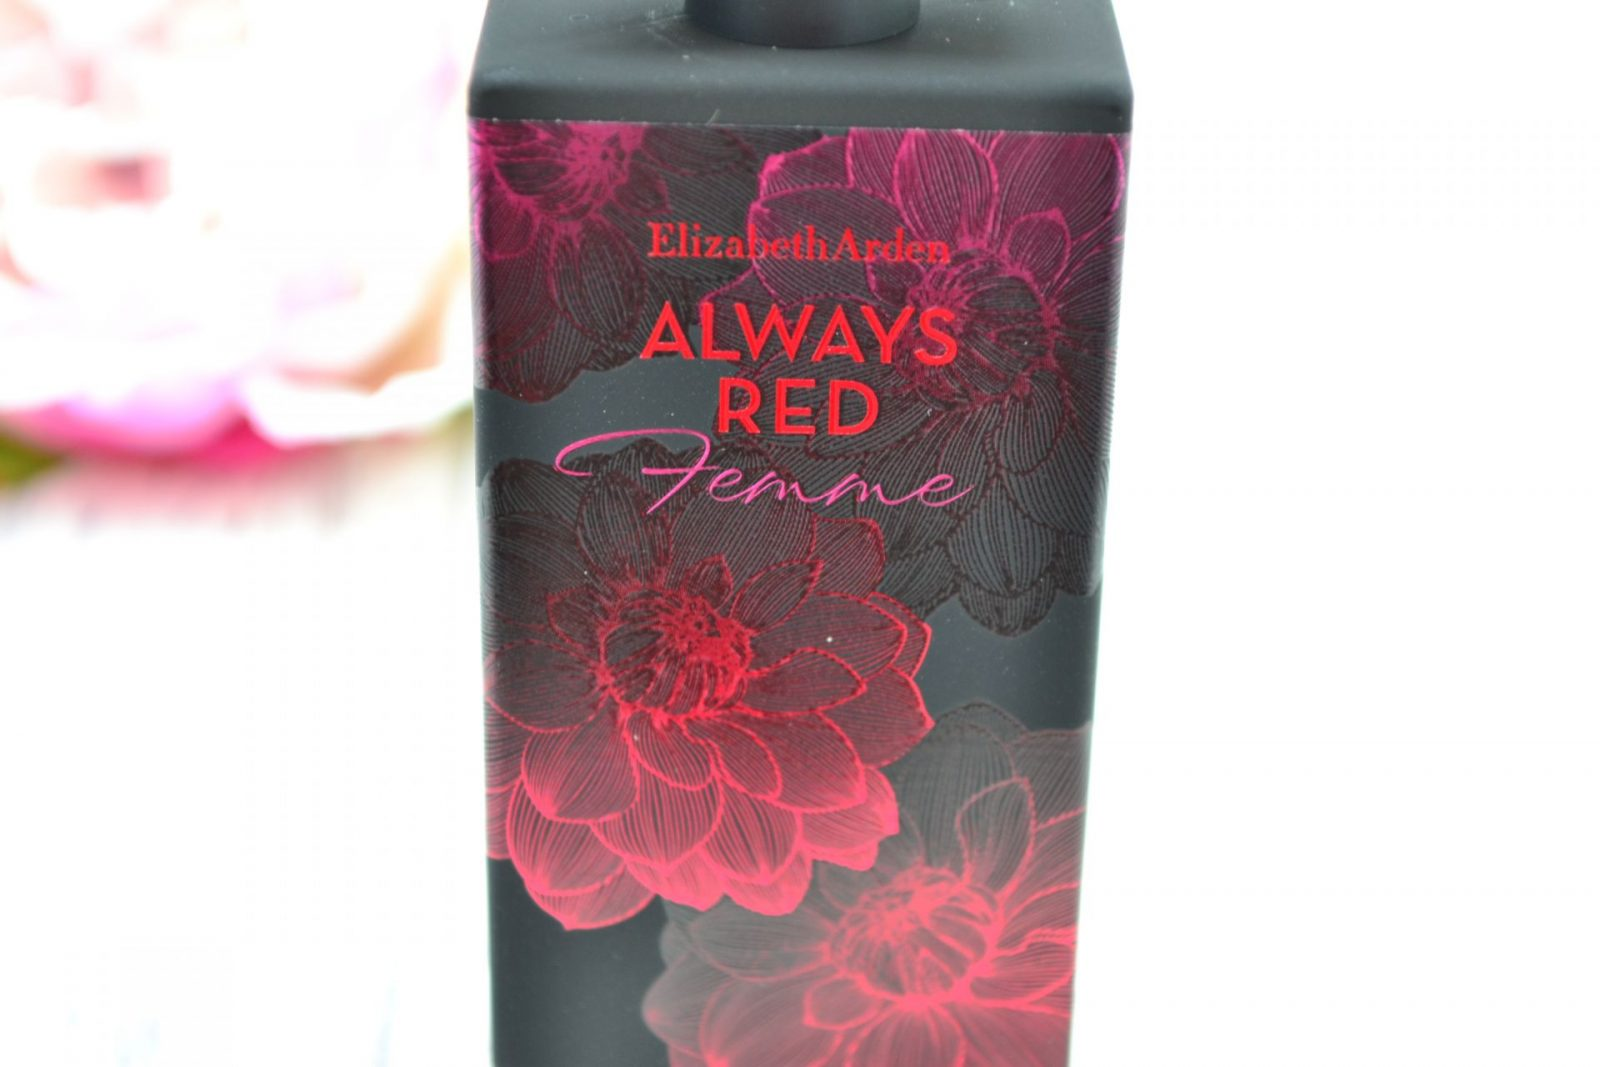 elizabeth-arden-always-red-femme-review